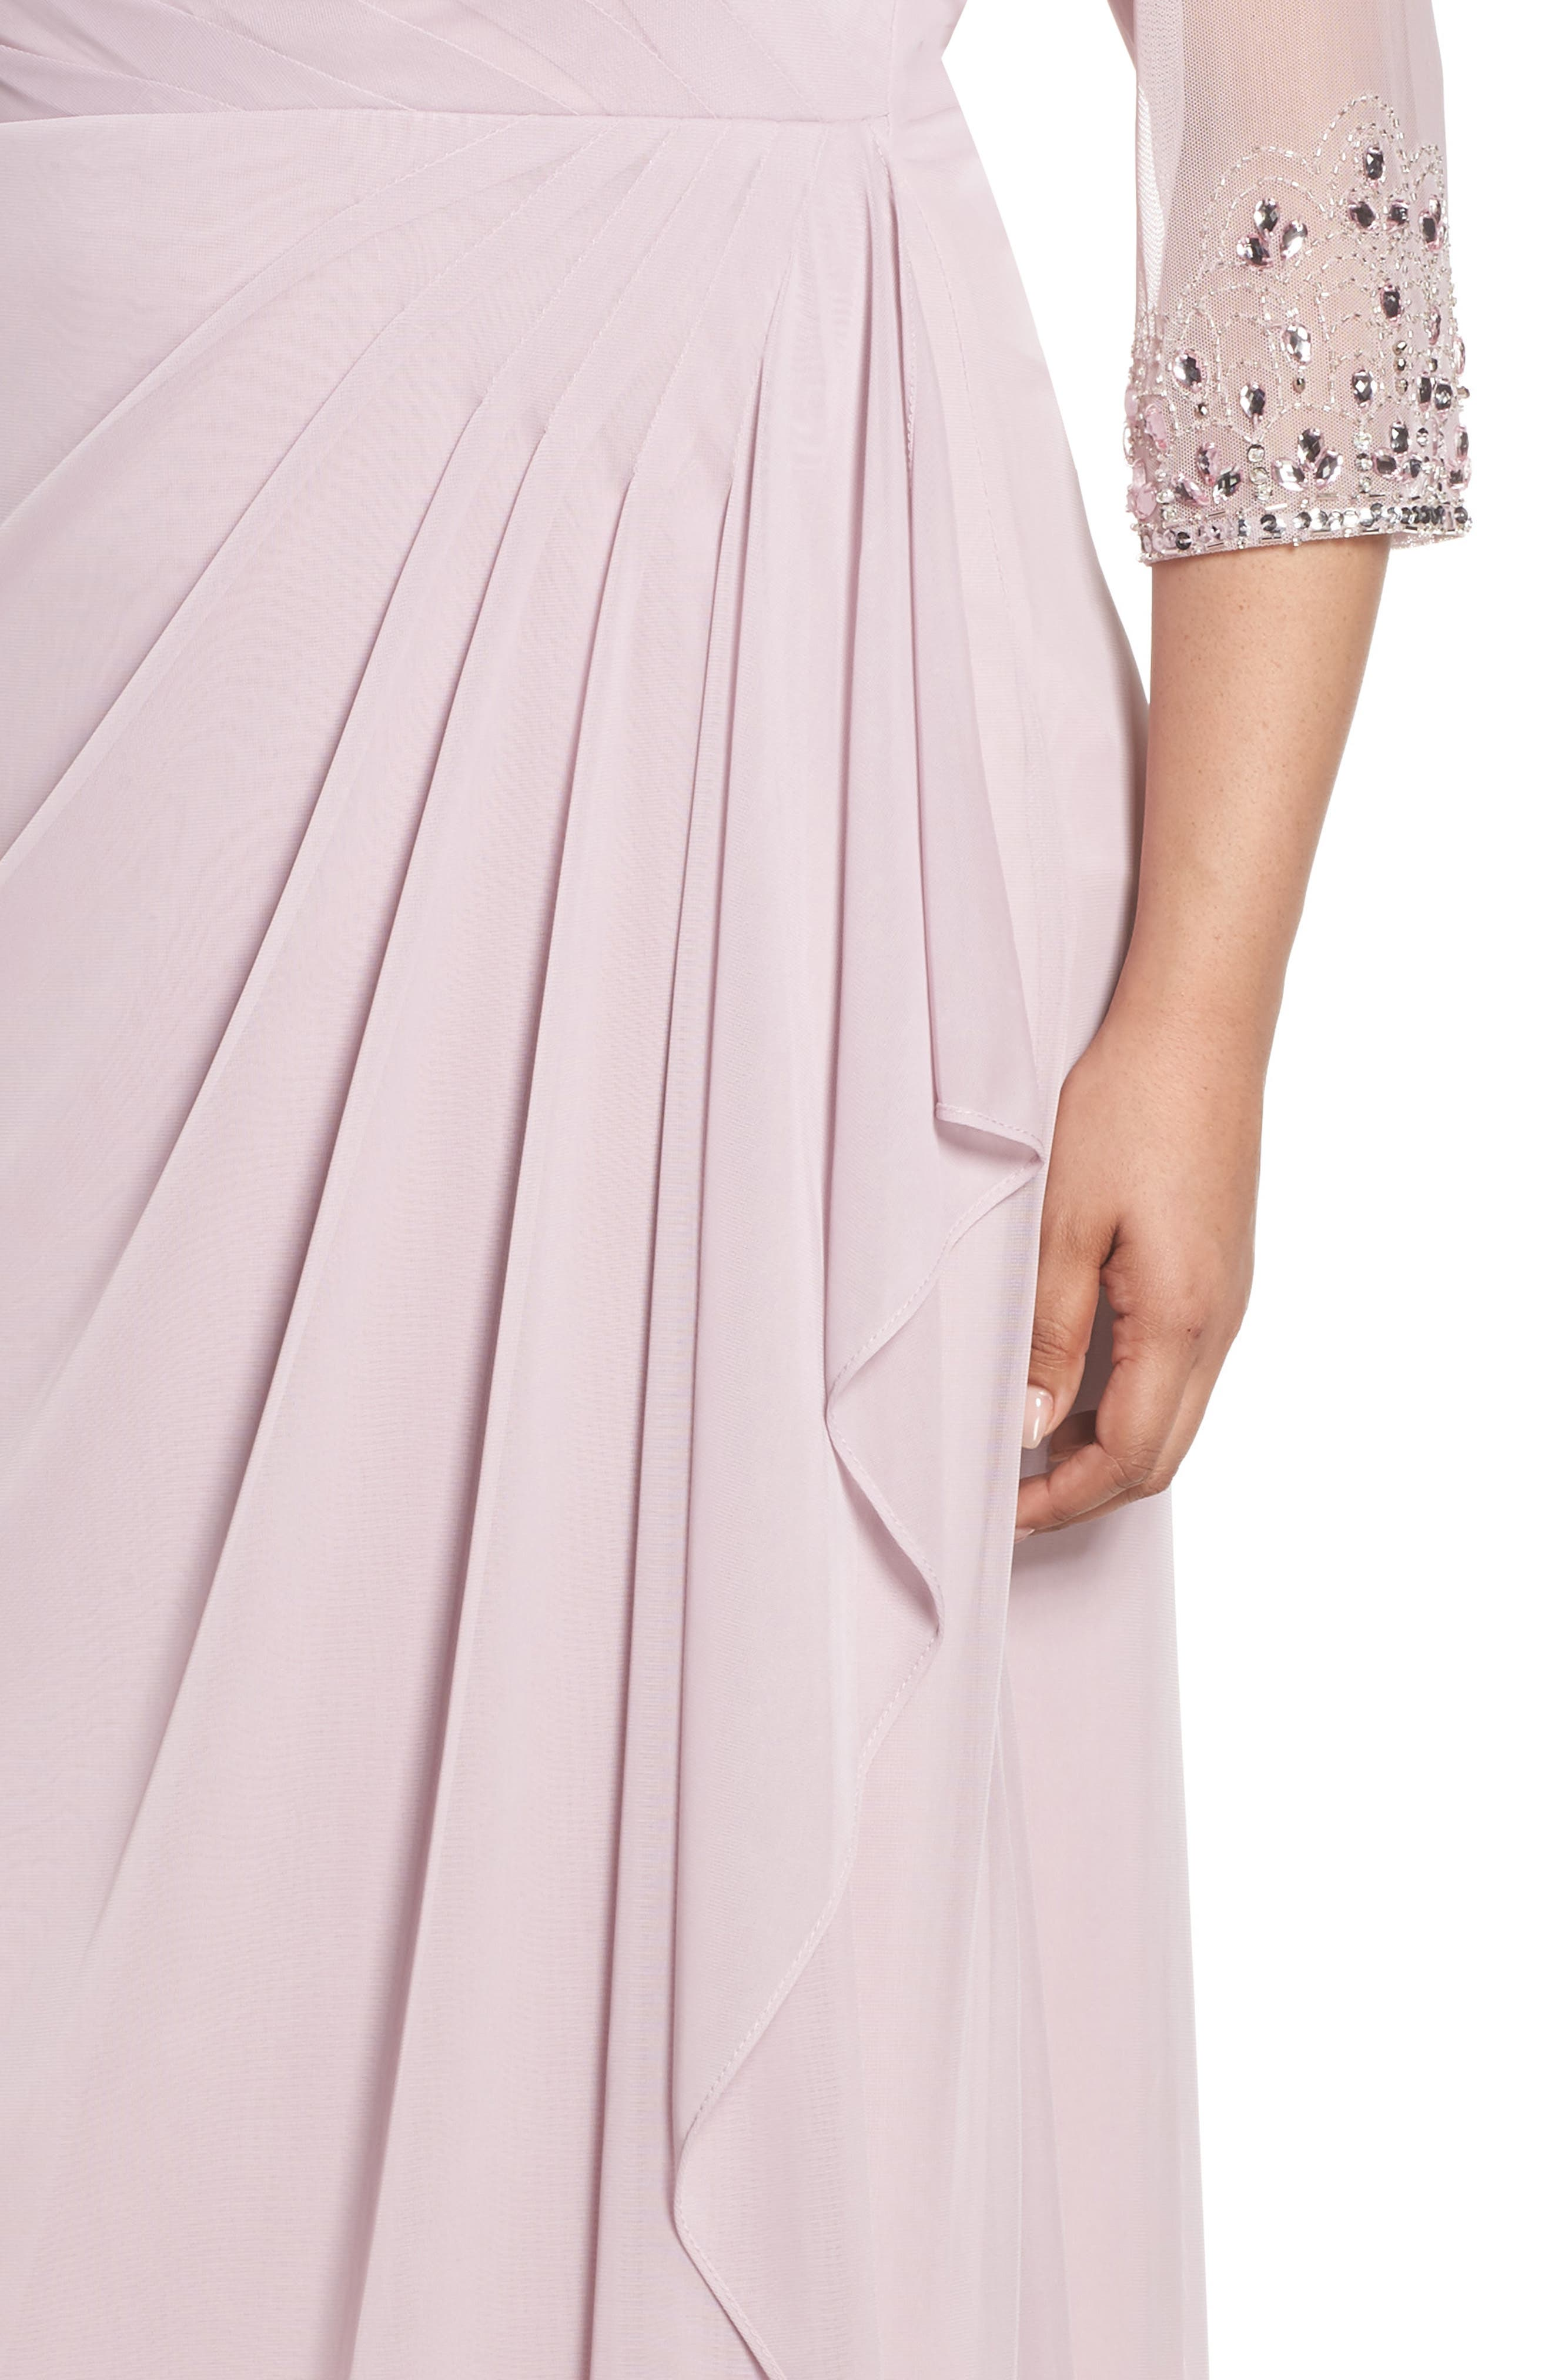 ALEX EVENINGS, Beaded Illusion Neck A-Line Gown, Alternate thumbnail 5, color, SMOKEY ORCHID